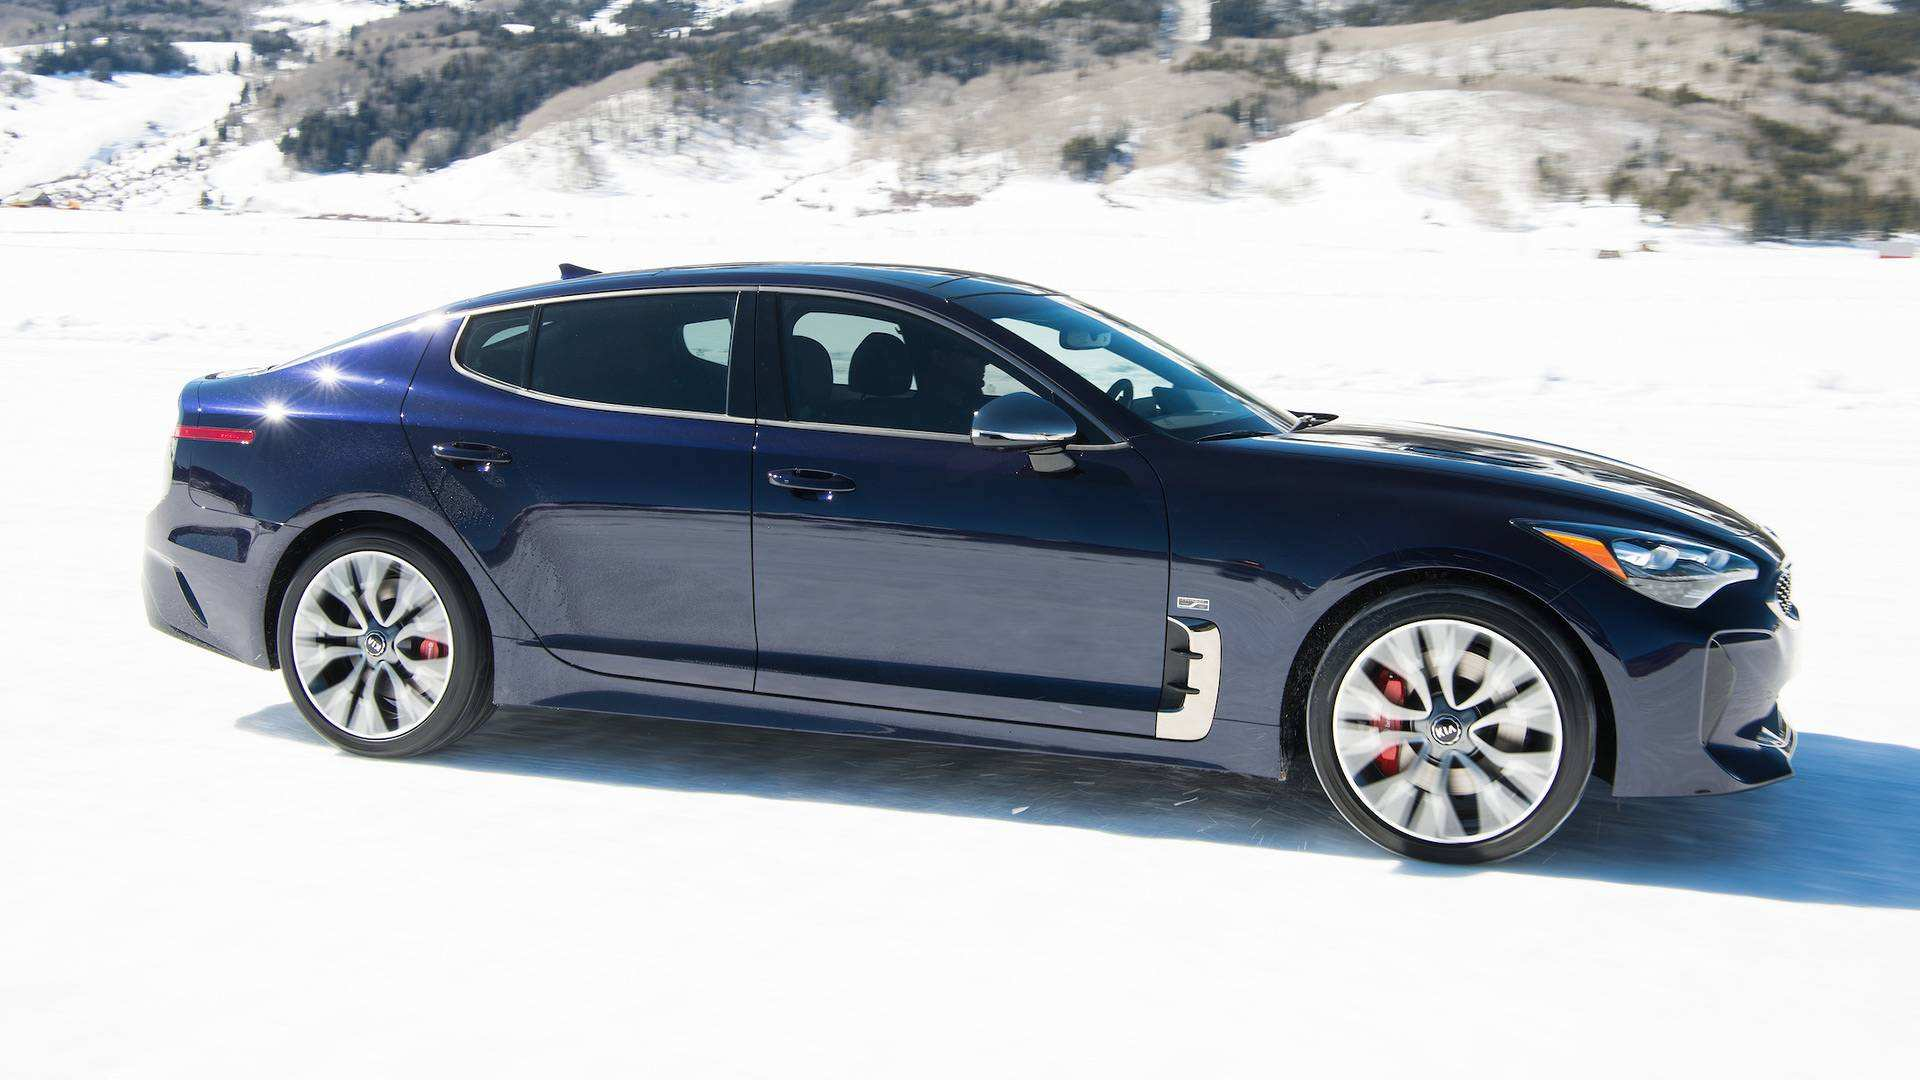 62 New 2019 Kia Stinger Gt Specs Price and Review with 2019 Kia Stinger Gt Specs